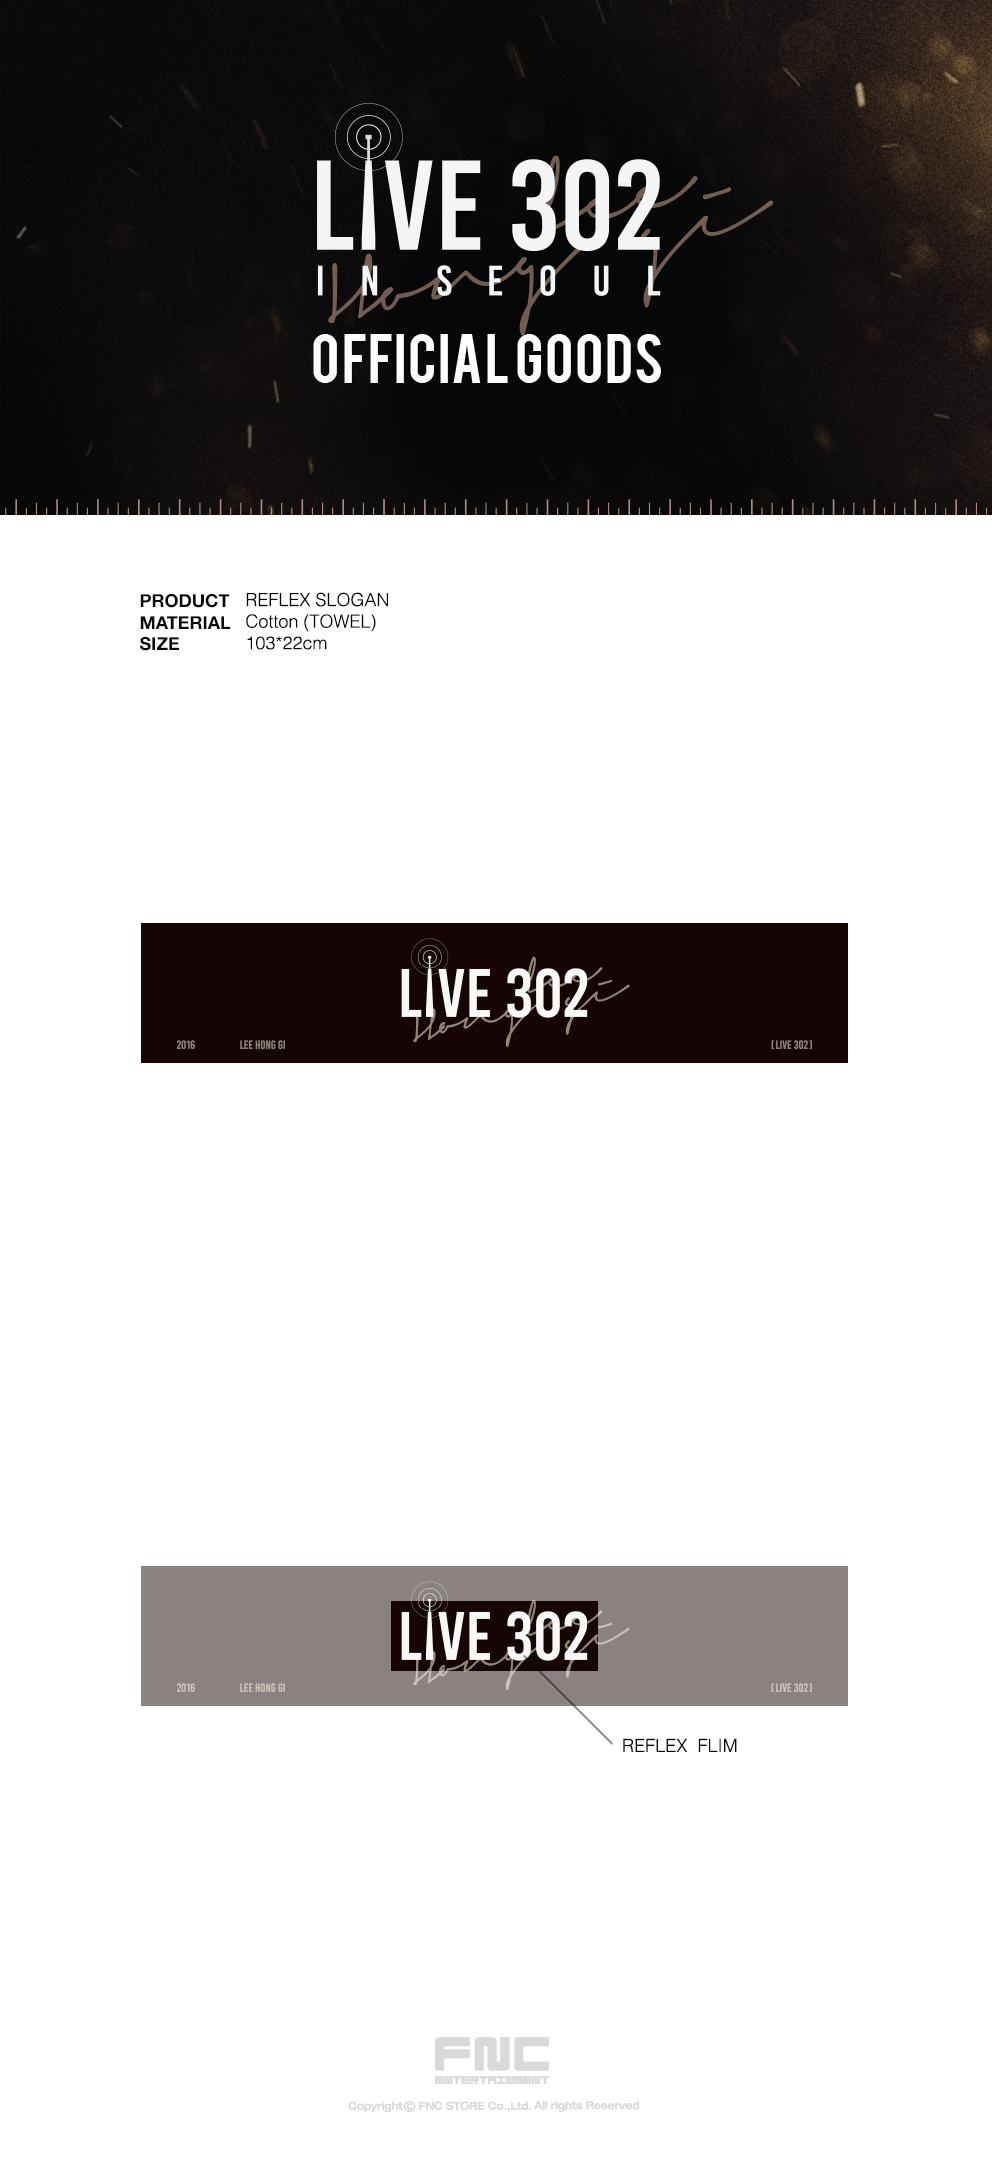 Lee Hong Gi (FTISLAND) - Lee Hong Gi LIVE 302 REFLEX SLOGAN